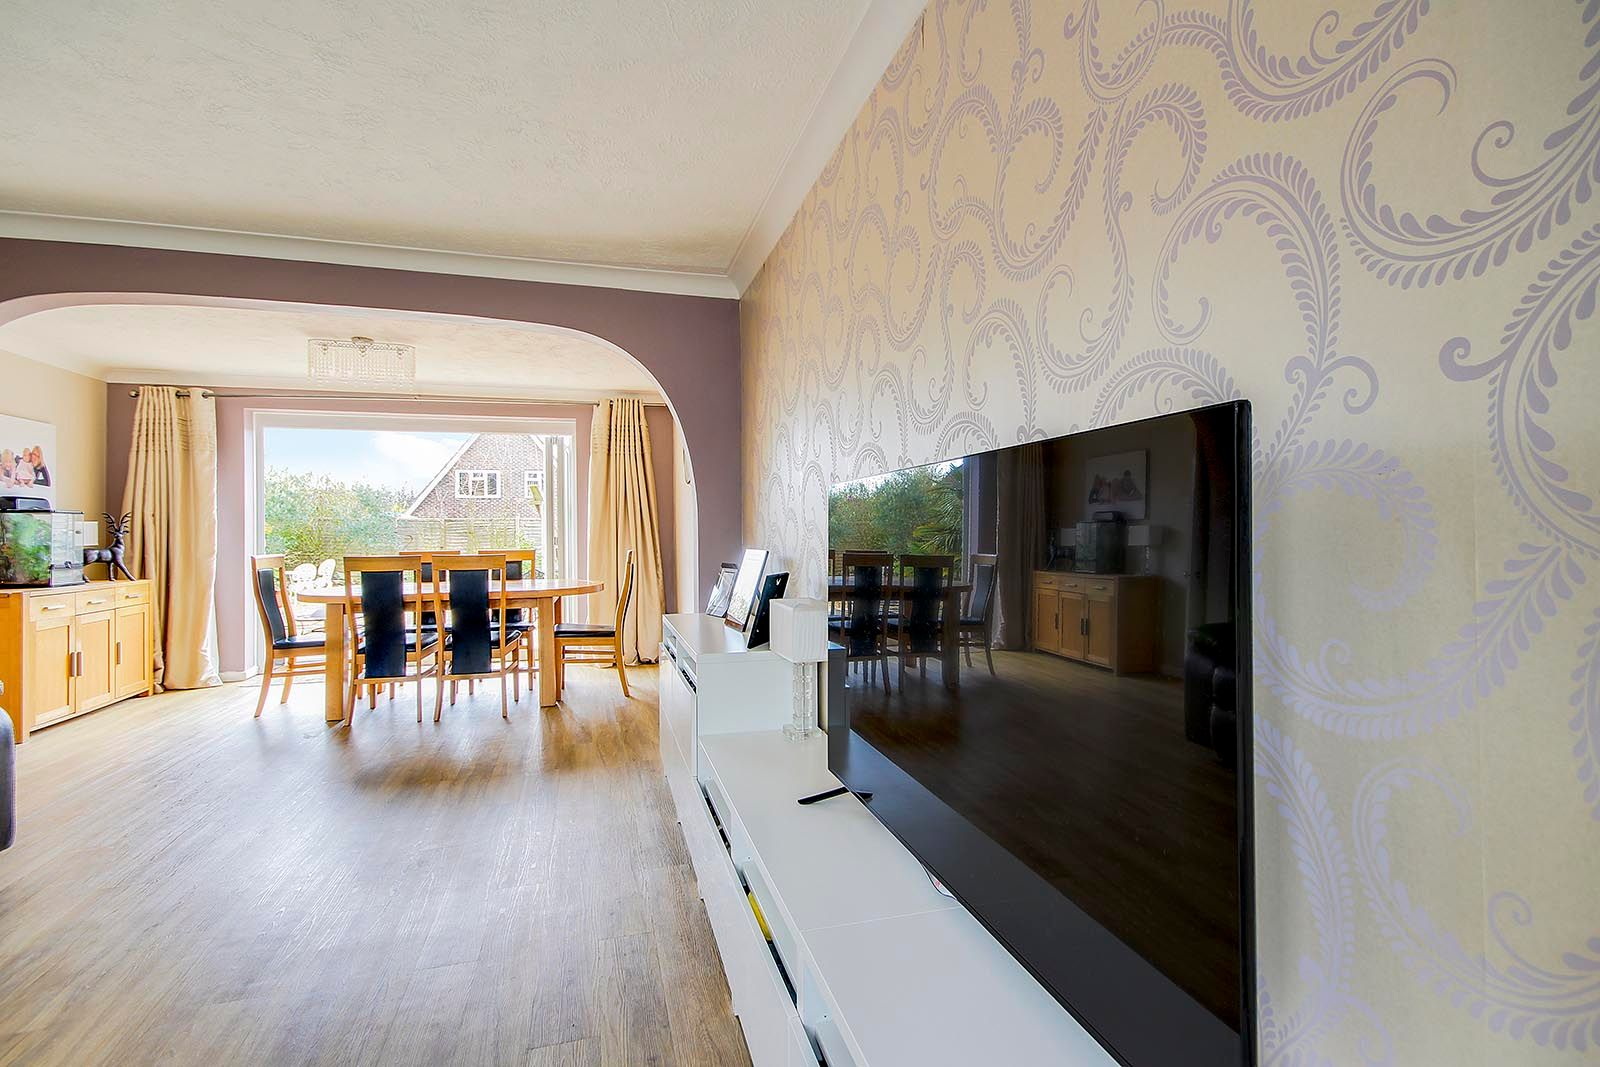 3 bed house for sale in Woodlands Close (COMP AUG 19)  - Property Image 11